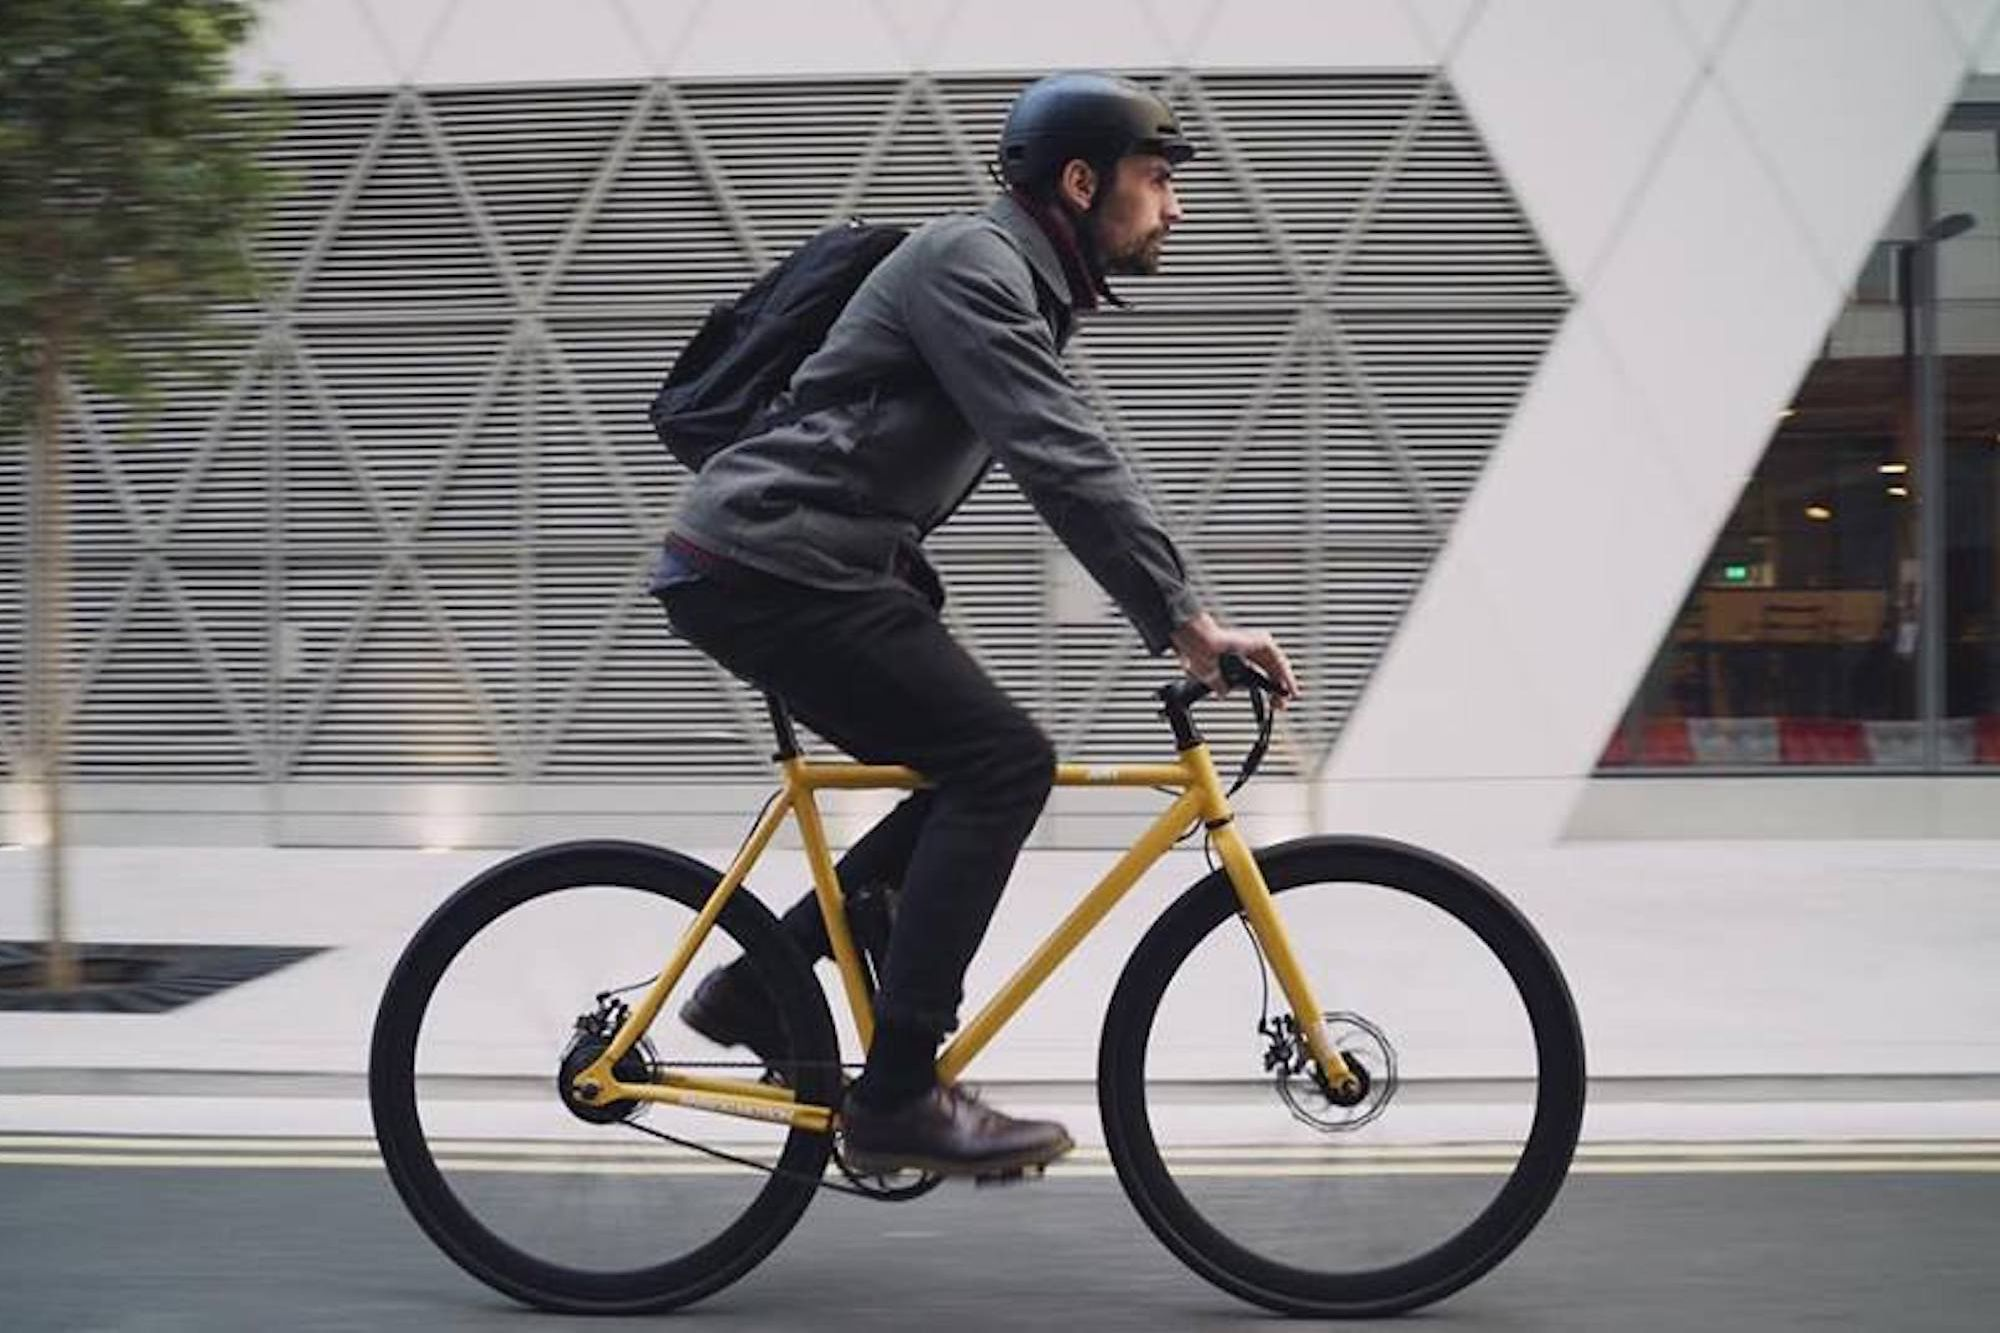 Get to Work in Style and Ease With This Snappy E-Bike